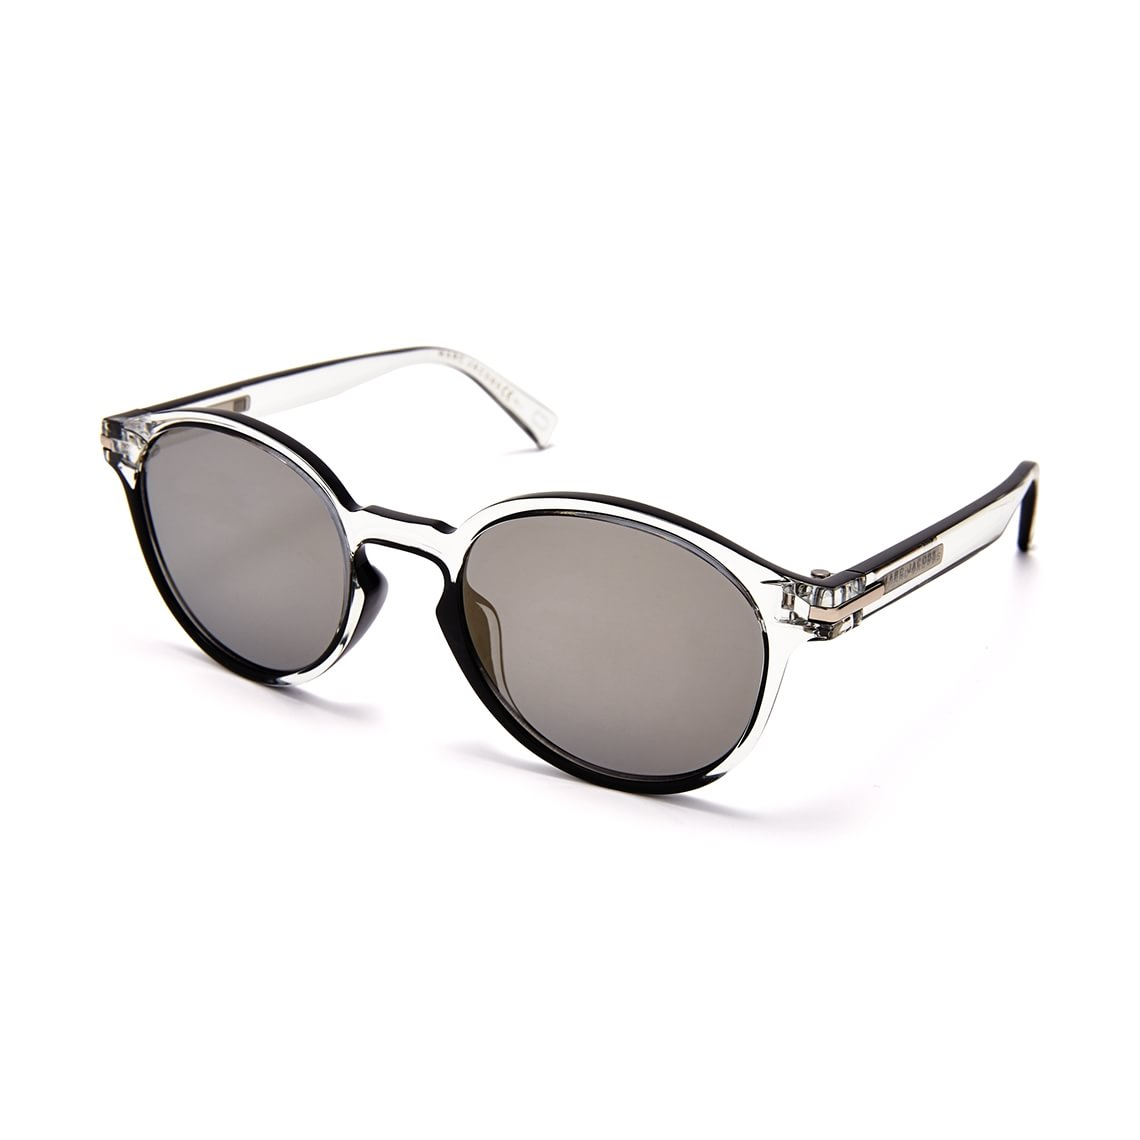 Marc Jacobs MARC 224 S MNG 5220 - Synsam cf2cad2d491ce